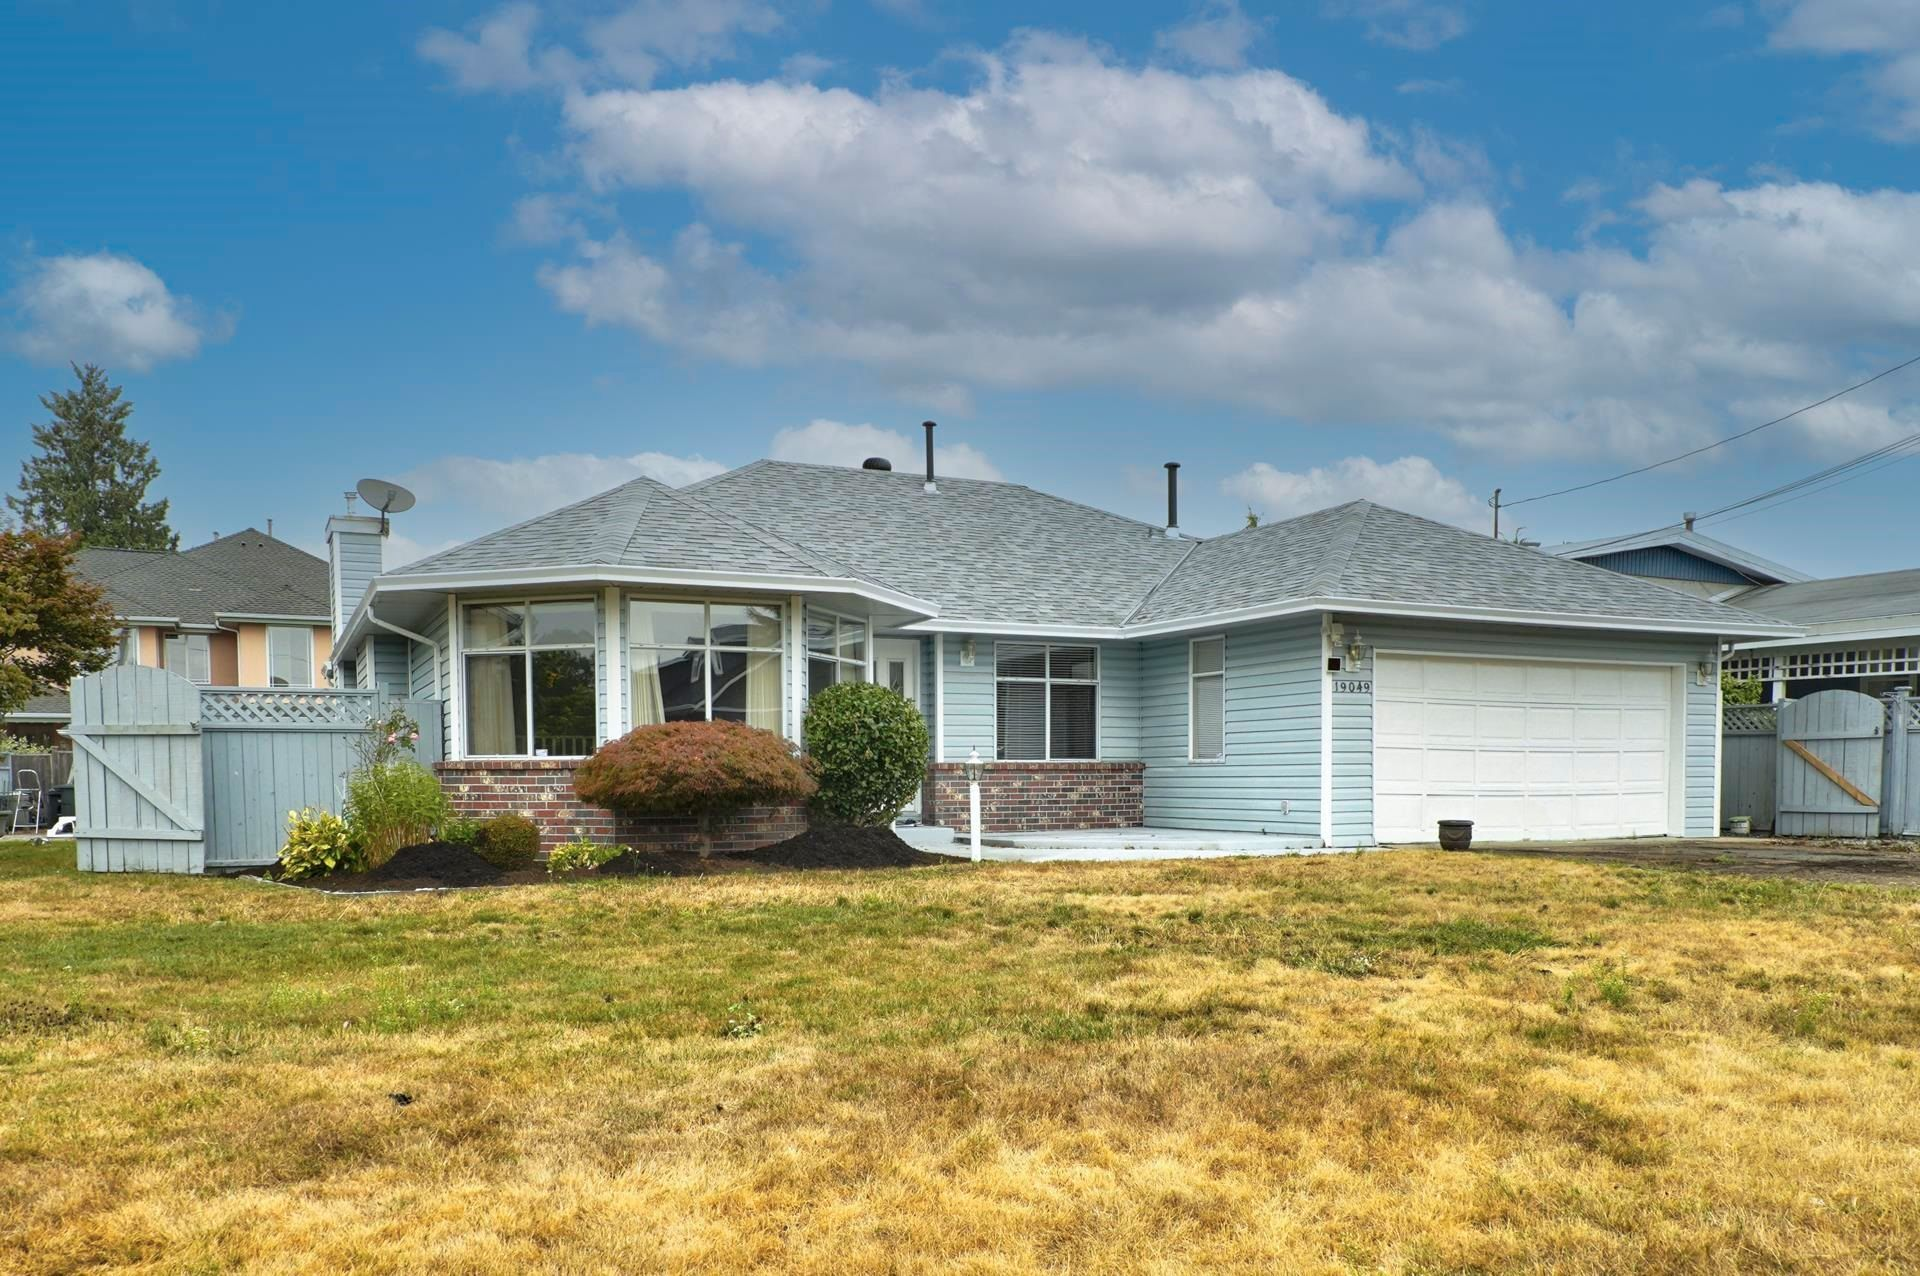 Main Photo: 19049 MITCHELL Road in Pitt Meadows: Central Meadows House for sale : MLS®# R2612171